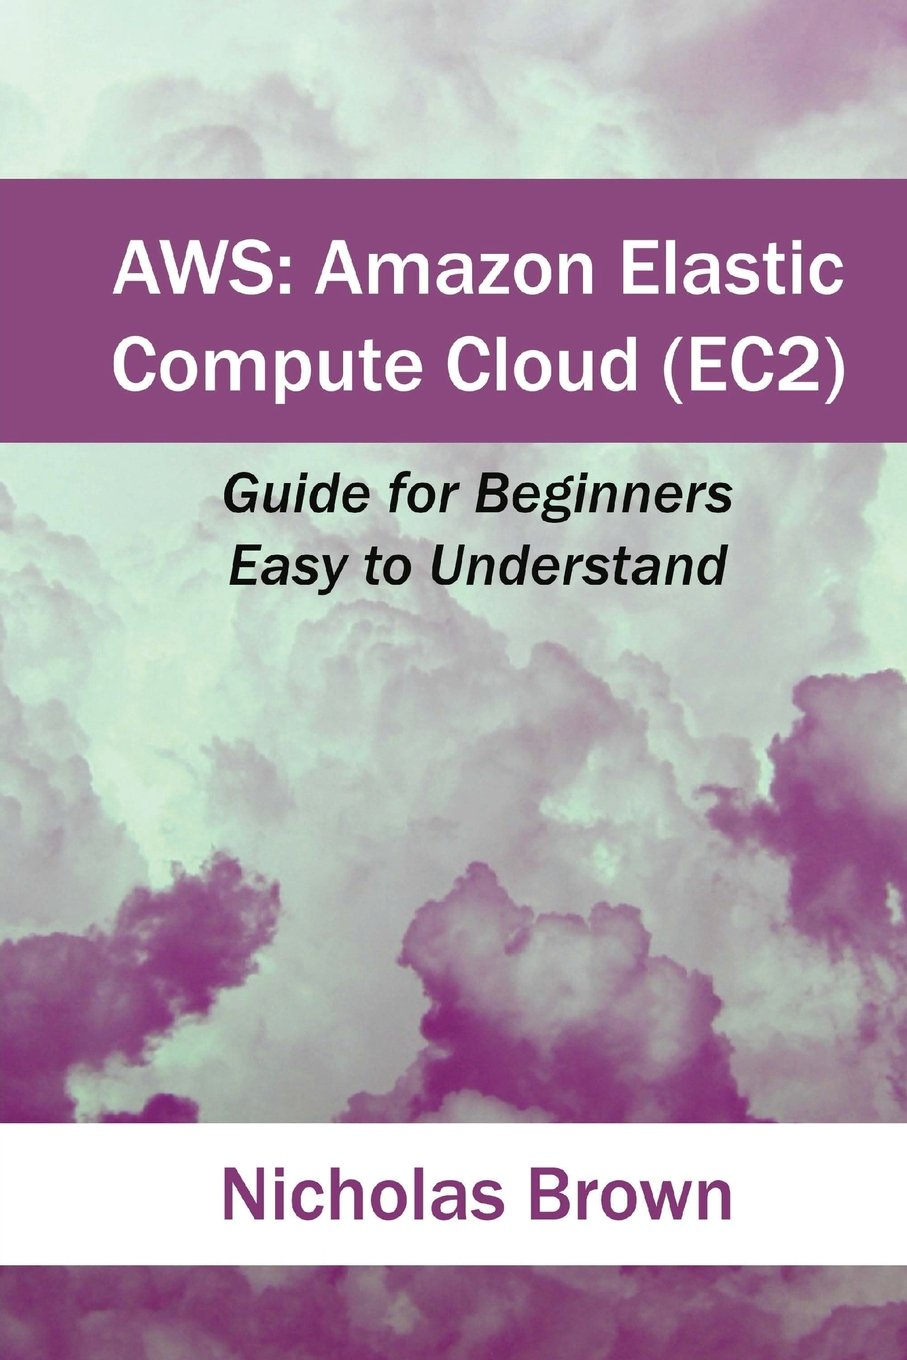 AWS: Amazon Elastic Compute Cloud (EC2): Guide for Beginners. Easy to Understand PDF